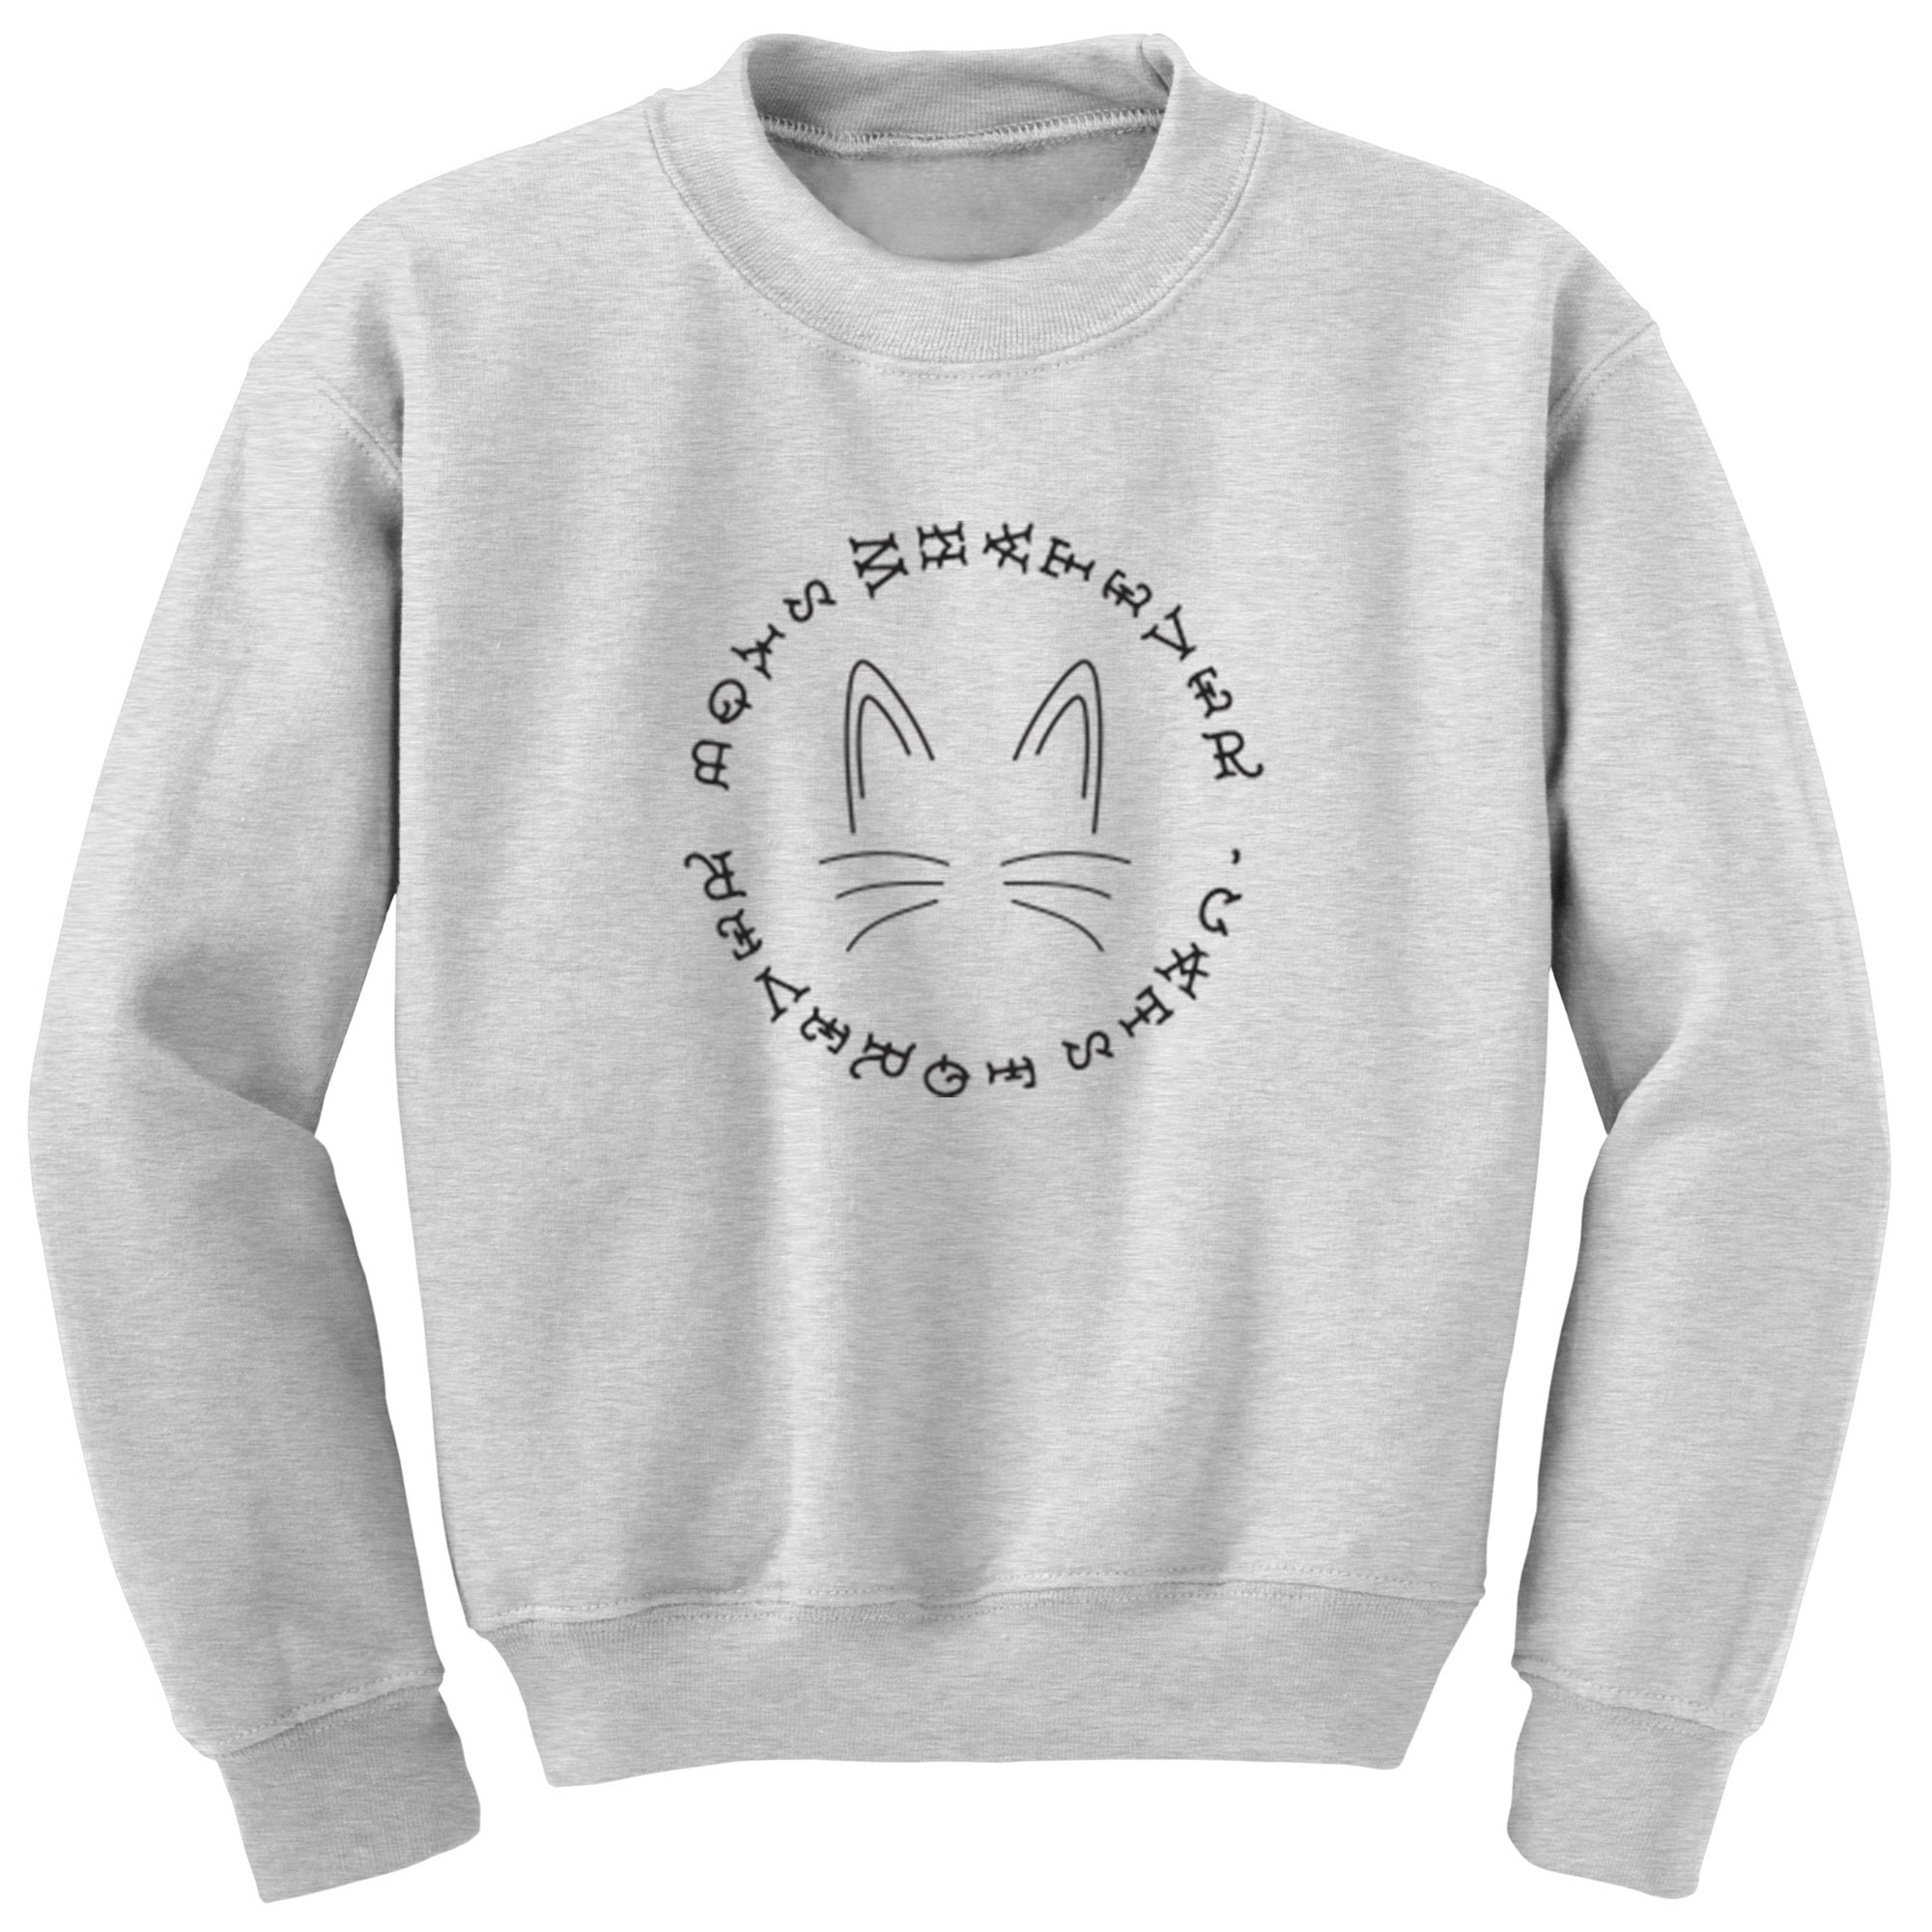 Cats Forever Boys Whatever Childrens Ages 3/4-12/14 Unisex Jumper S0014 - Illustrated Identity Ltd.